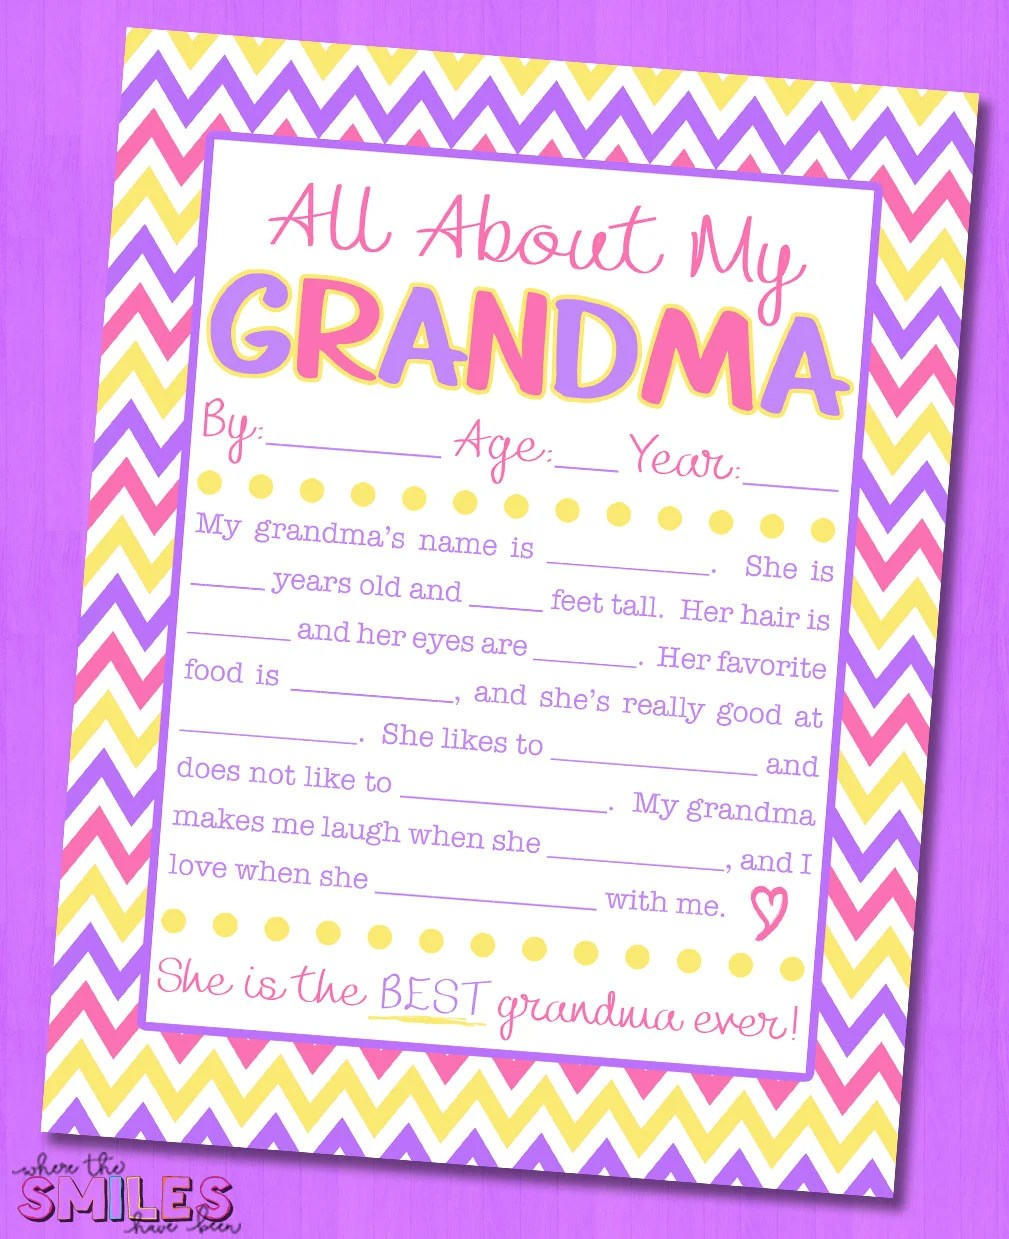 photo regarding All About Grandma Printable known as All Over My Grandma Job interview with No cost Printable 8